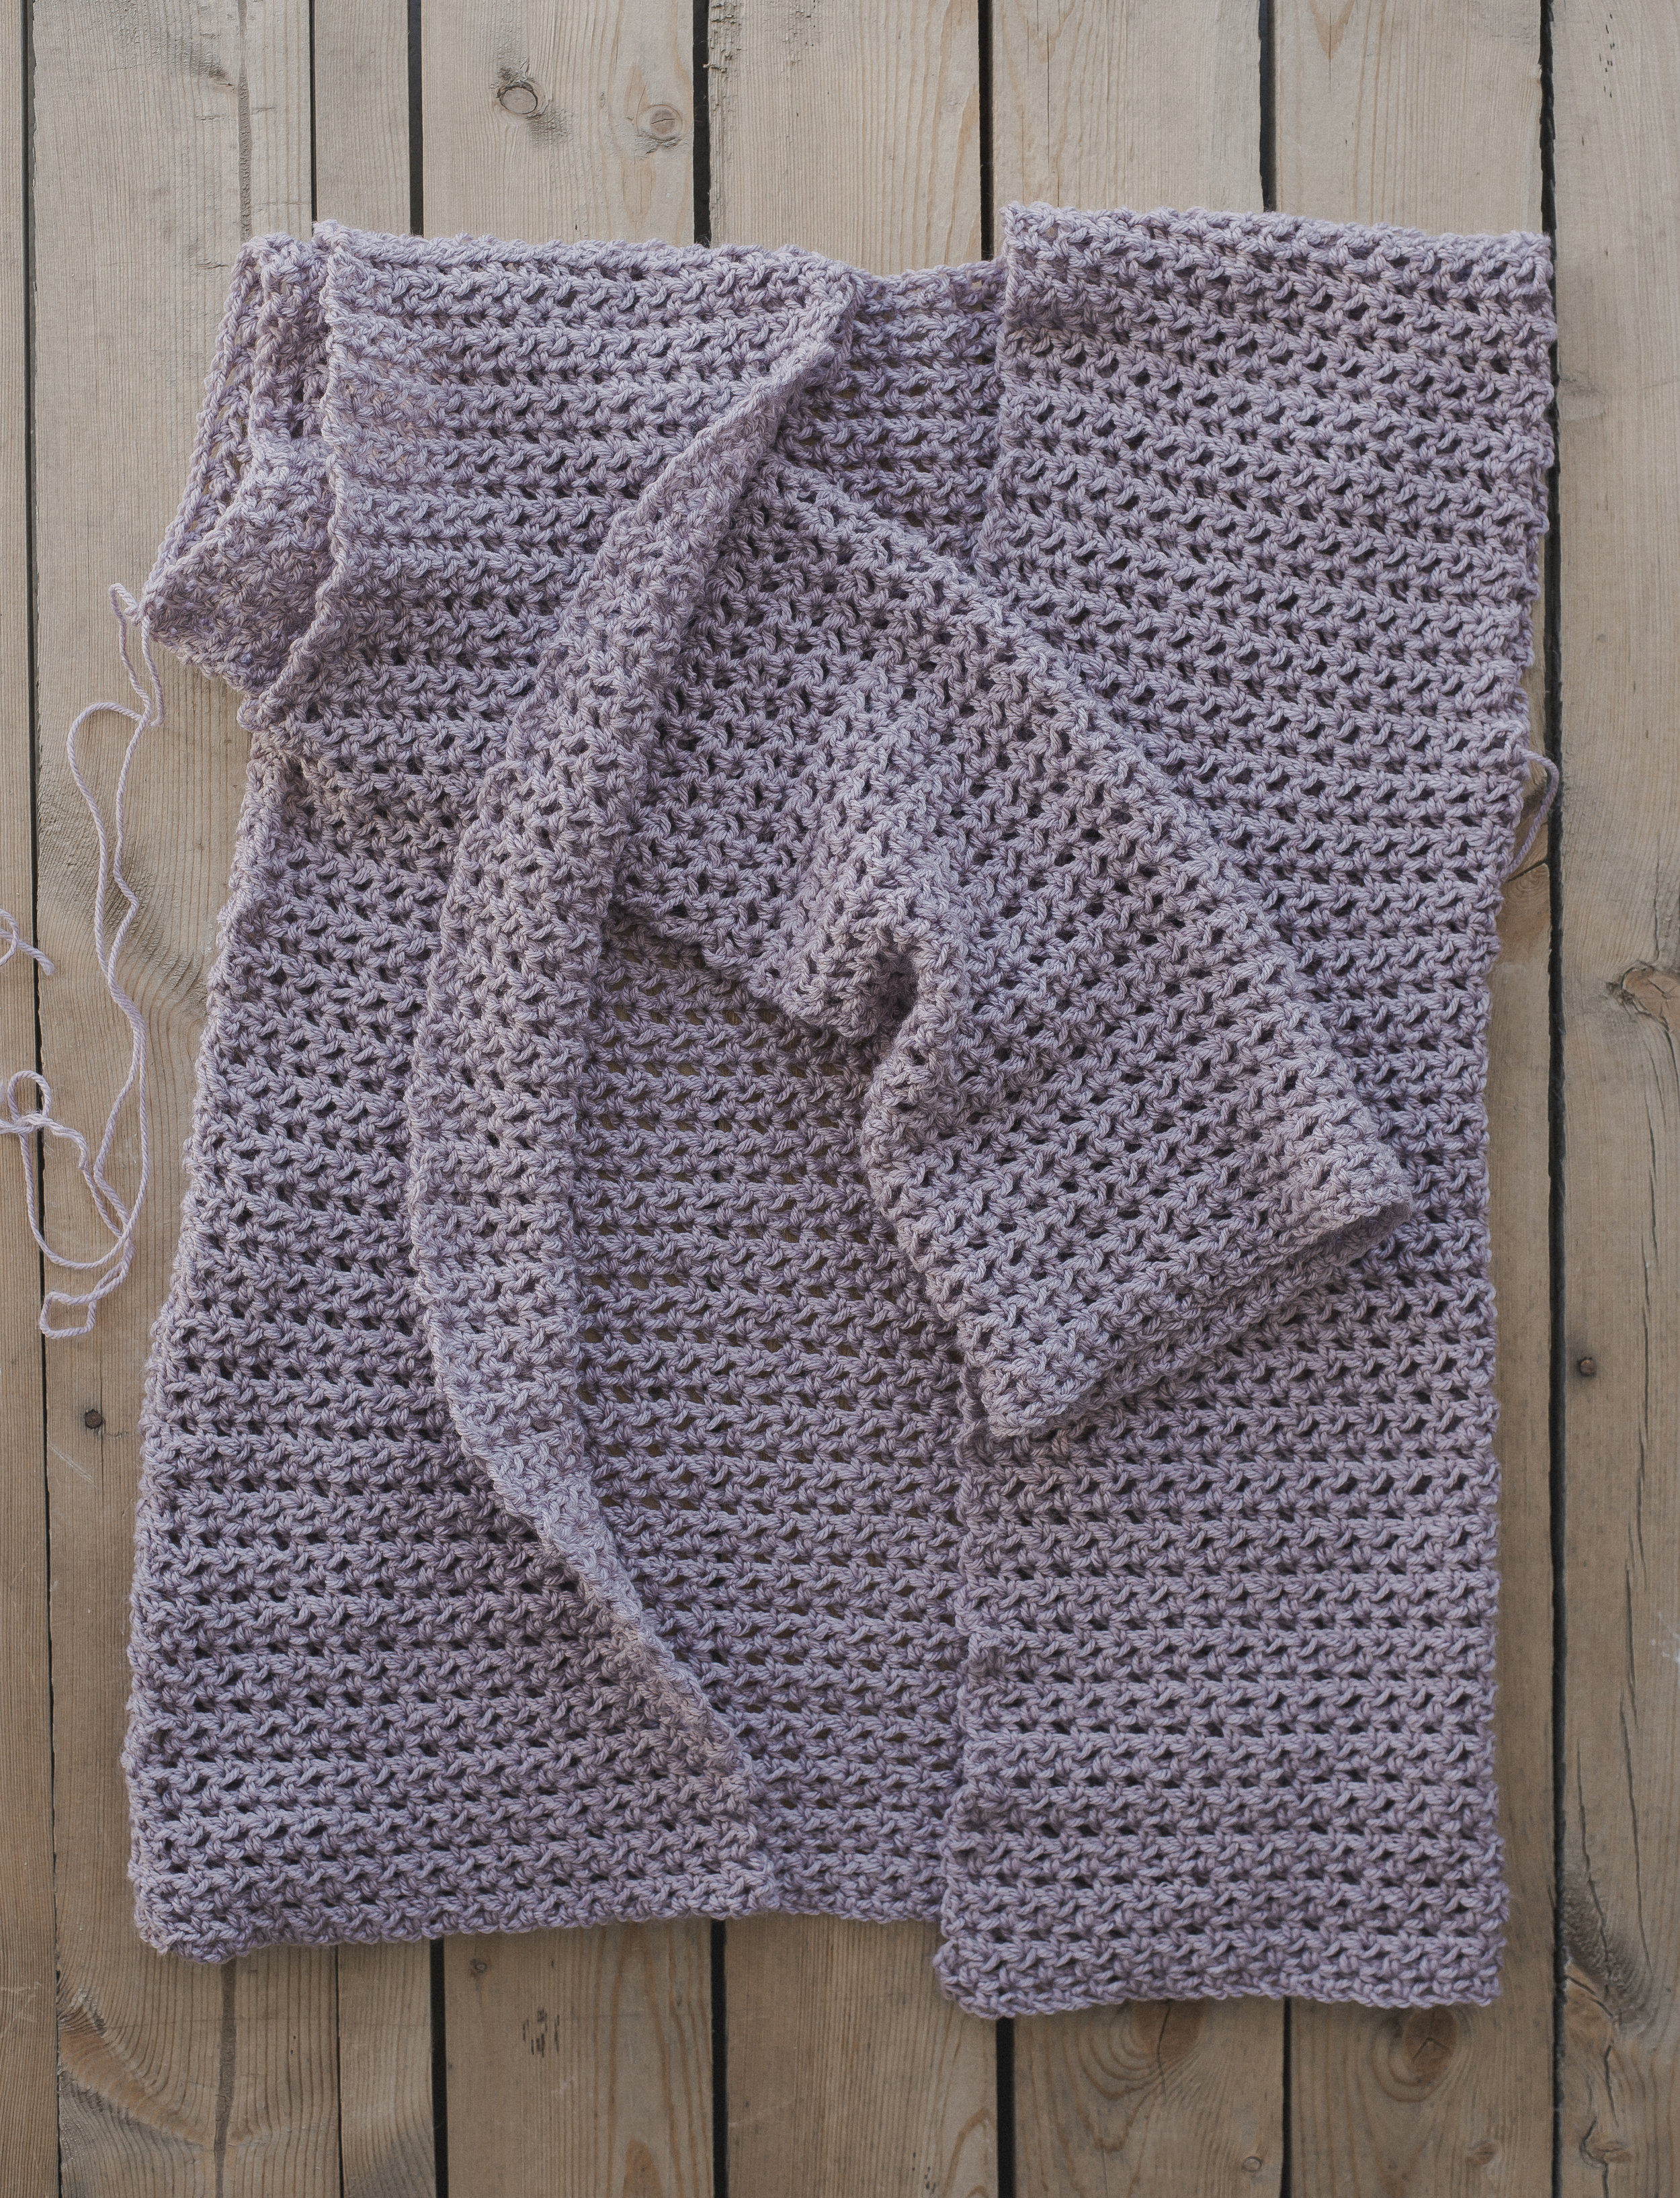 Free Crochet Pattern for The Perfect Spring Sweater - Megmade with Love